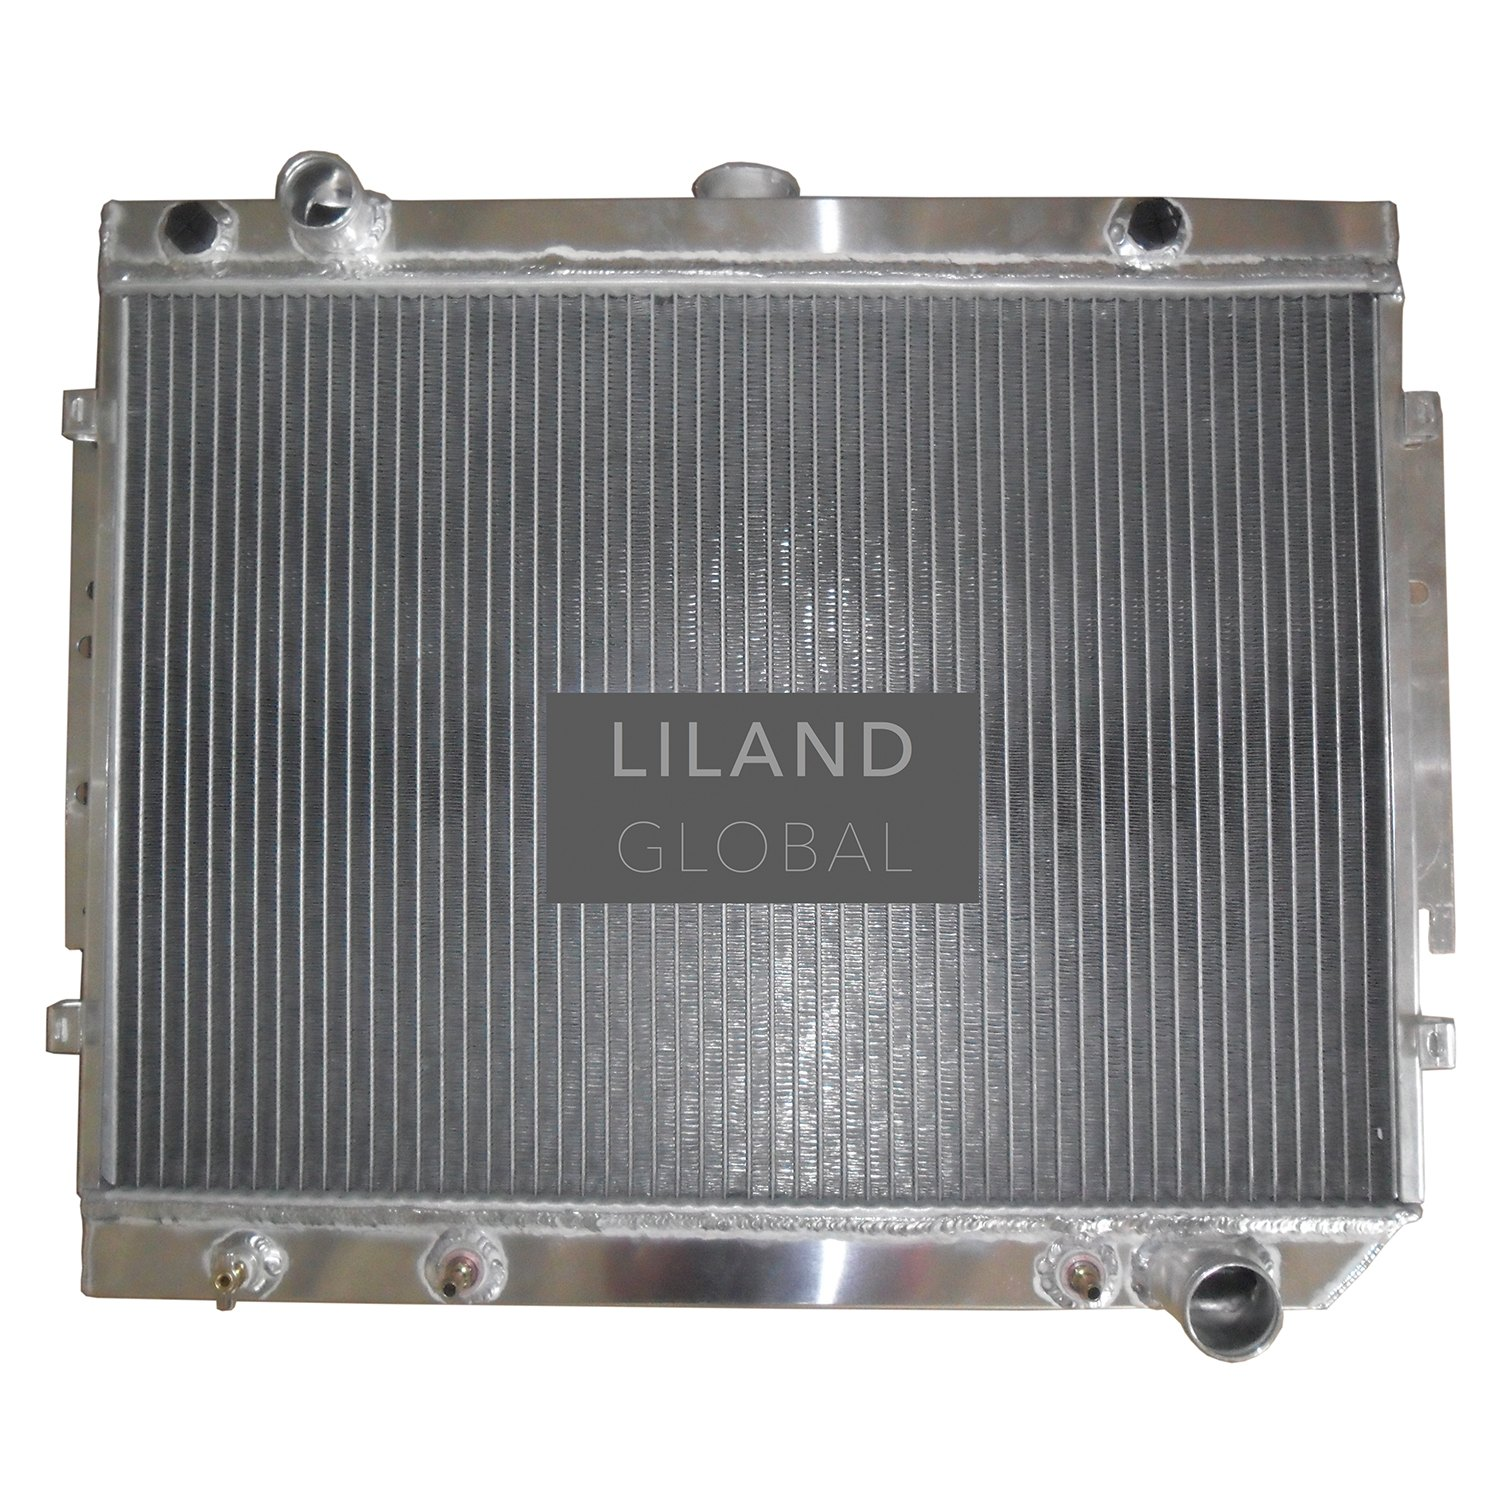 For Dodge Dart 40 40 Liland Global 40AA Engine Coolant ...